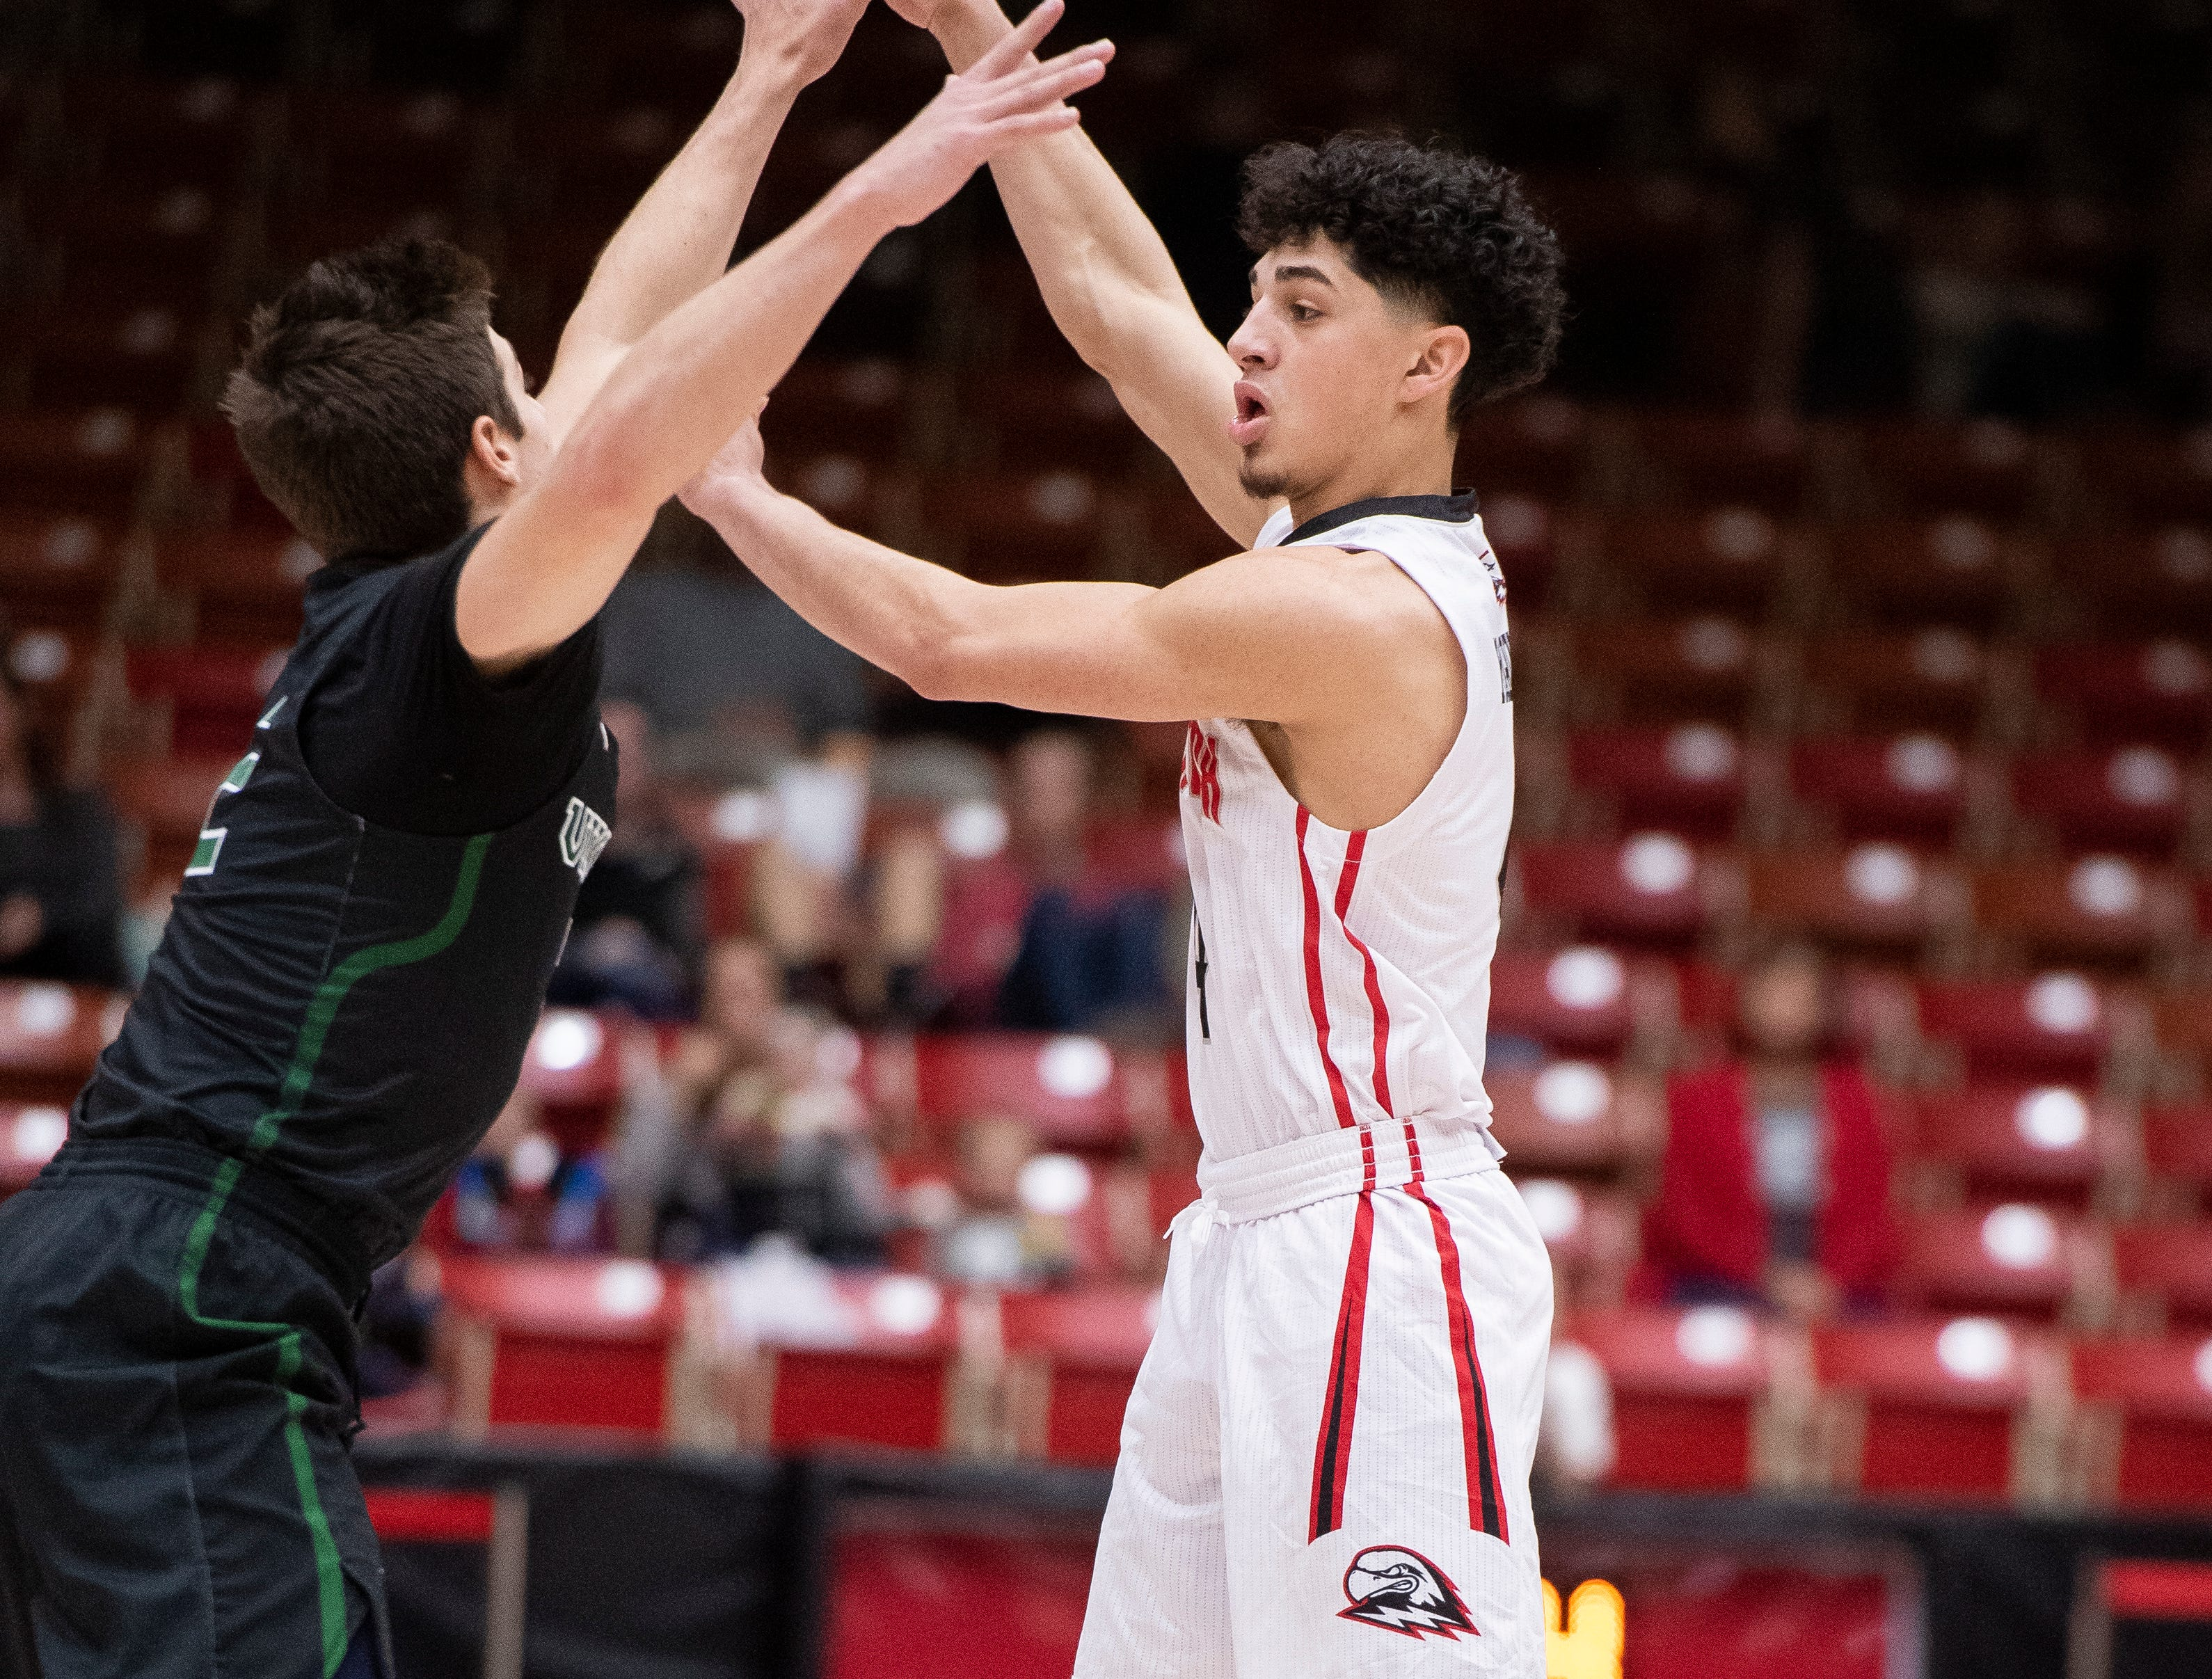 Southern Utah University sophomore Dre Marin (4) throws a pass against Portland State in the America First Event Center Thursday, January 17, 2019. SUU won, 83-69.